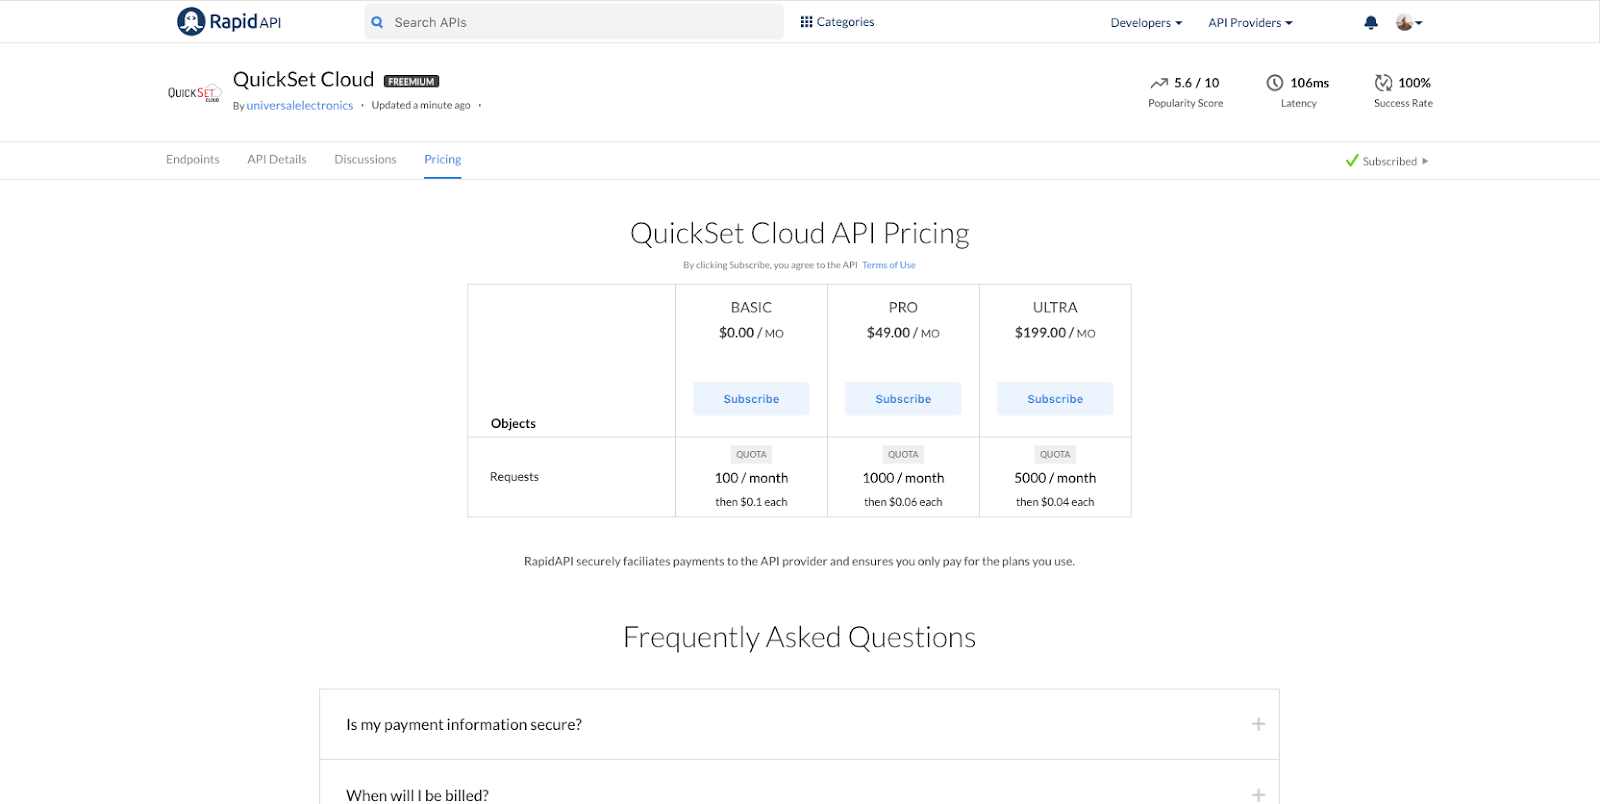 QuickSet Cloud API Pricing Page